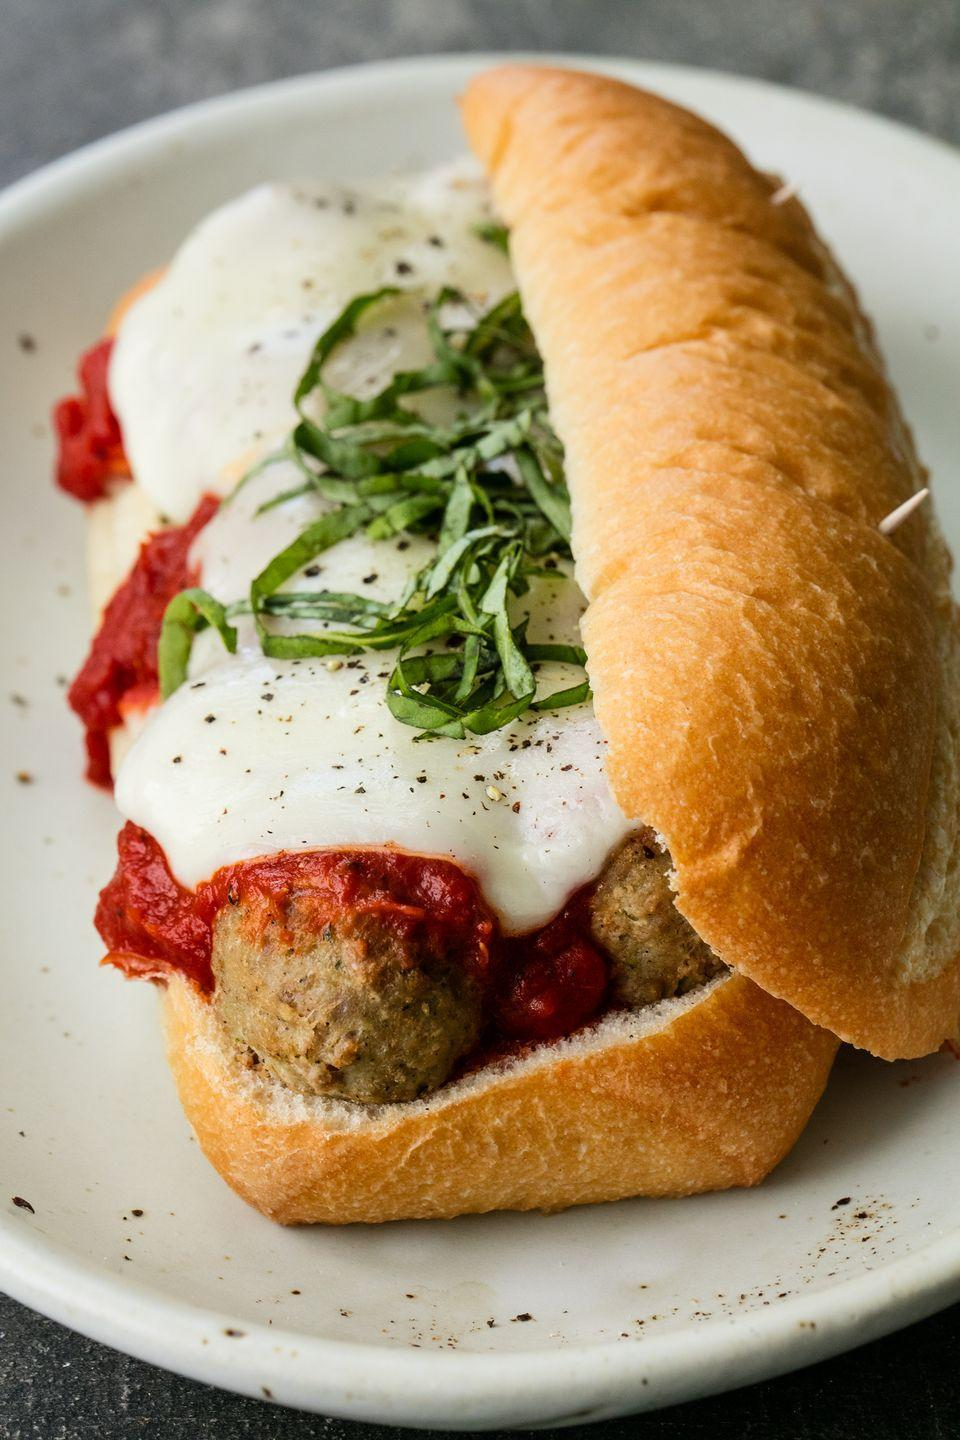 """<p>Our love for chicken parm knows no limits.</p><p>Get the recipe from <a href=""""https://www.delish.com/cooking/recipe-ideas/recipes/a53592/chicken-parm-meatball-subs-recipe/"""" rel=""""nofollow noopener"""" target=""""_blank"""" data-ylk=""""slk:Delish"""" class=""""link rapid-noclick-resp"""">Delish</a>. </p>"""